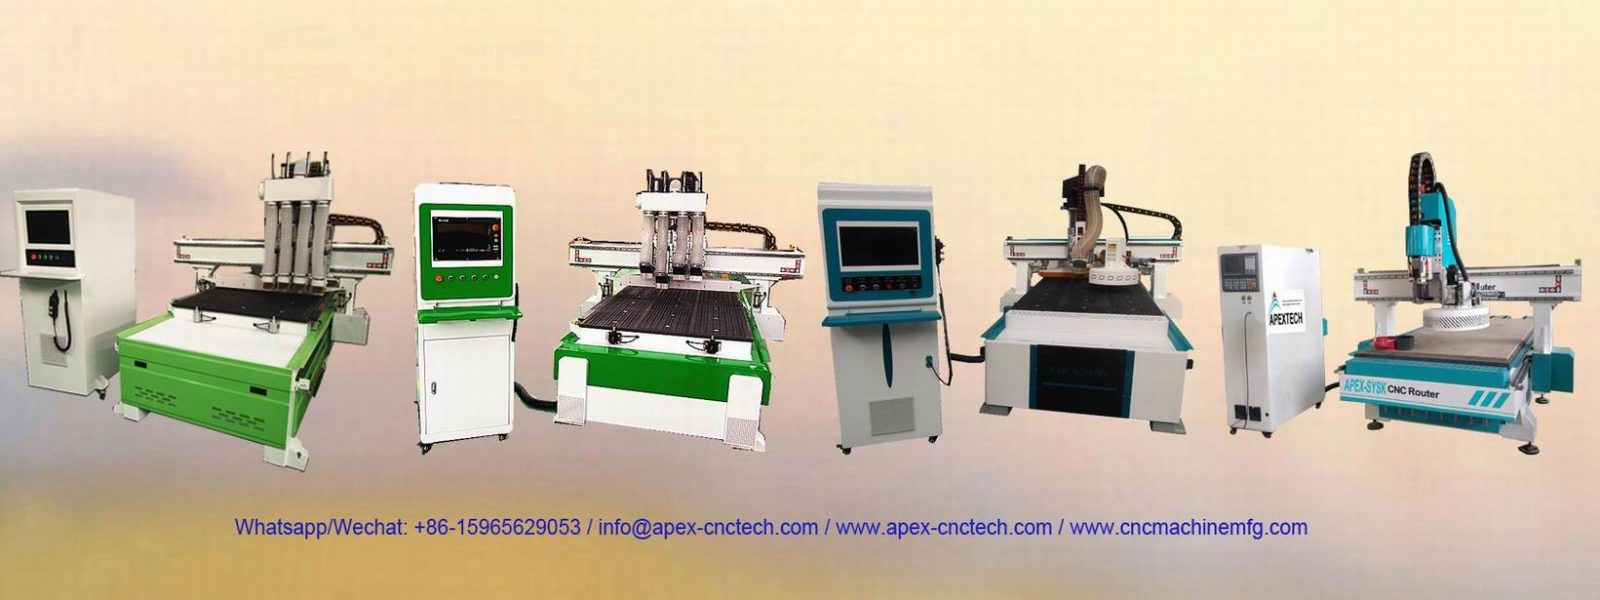 cnc mill wood cnc router machine for sale